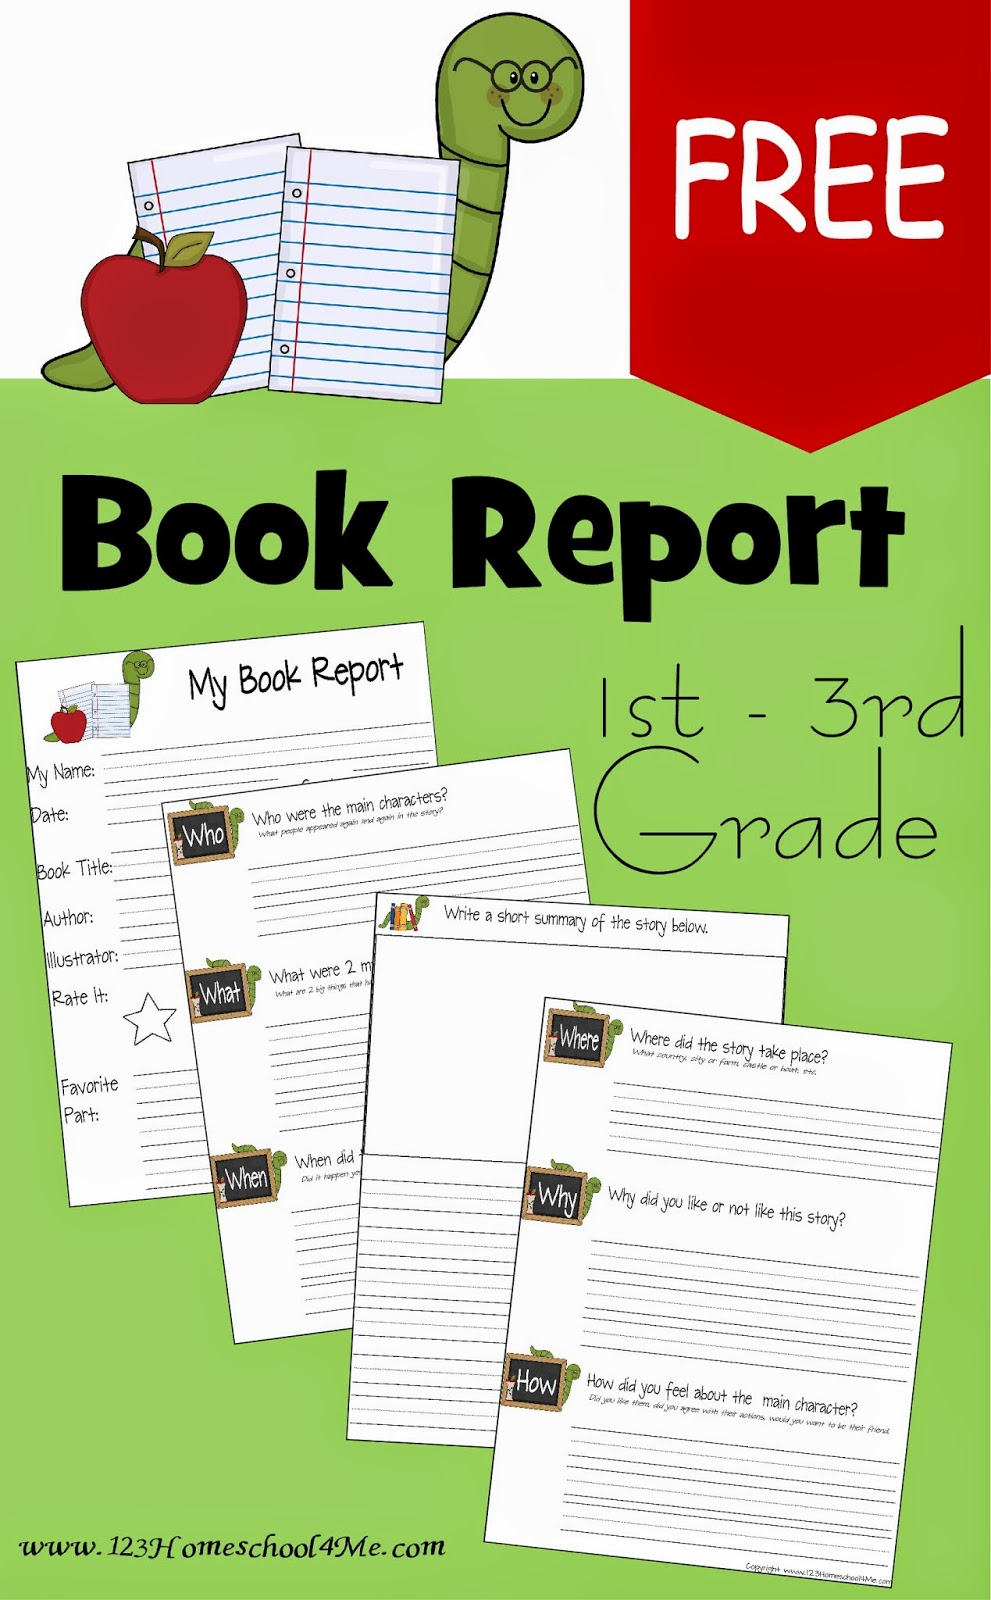 FREE Book Report Template – Book Report Worksheet